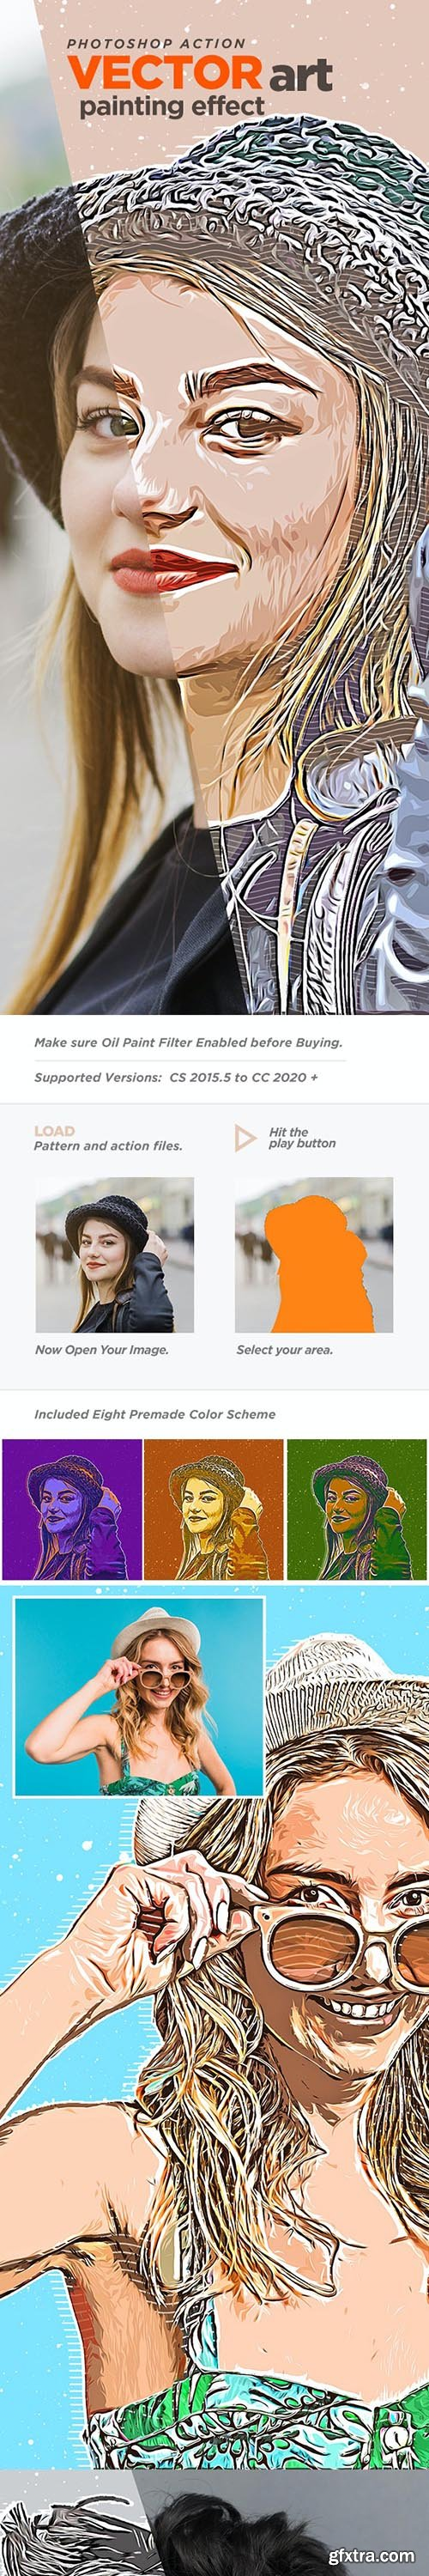 GraphicRiver - Vector Art Painting Effect Photoshop Action 27010115